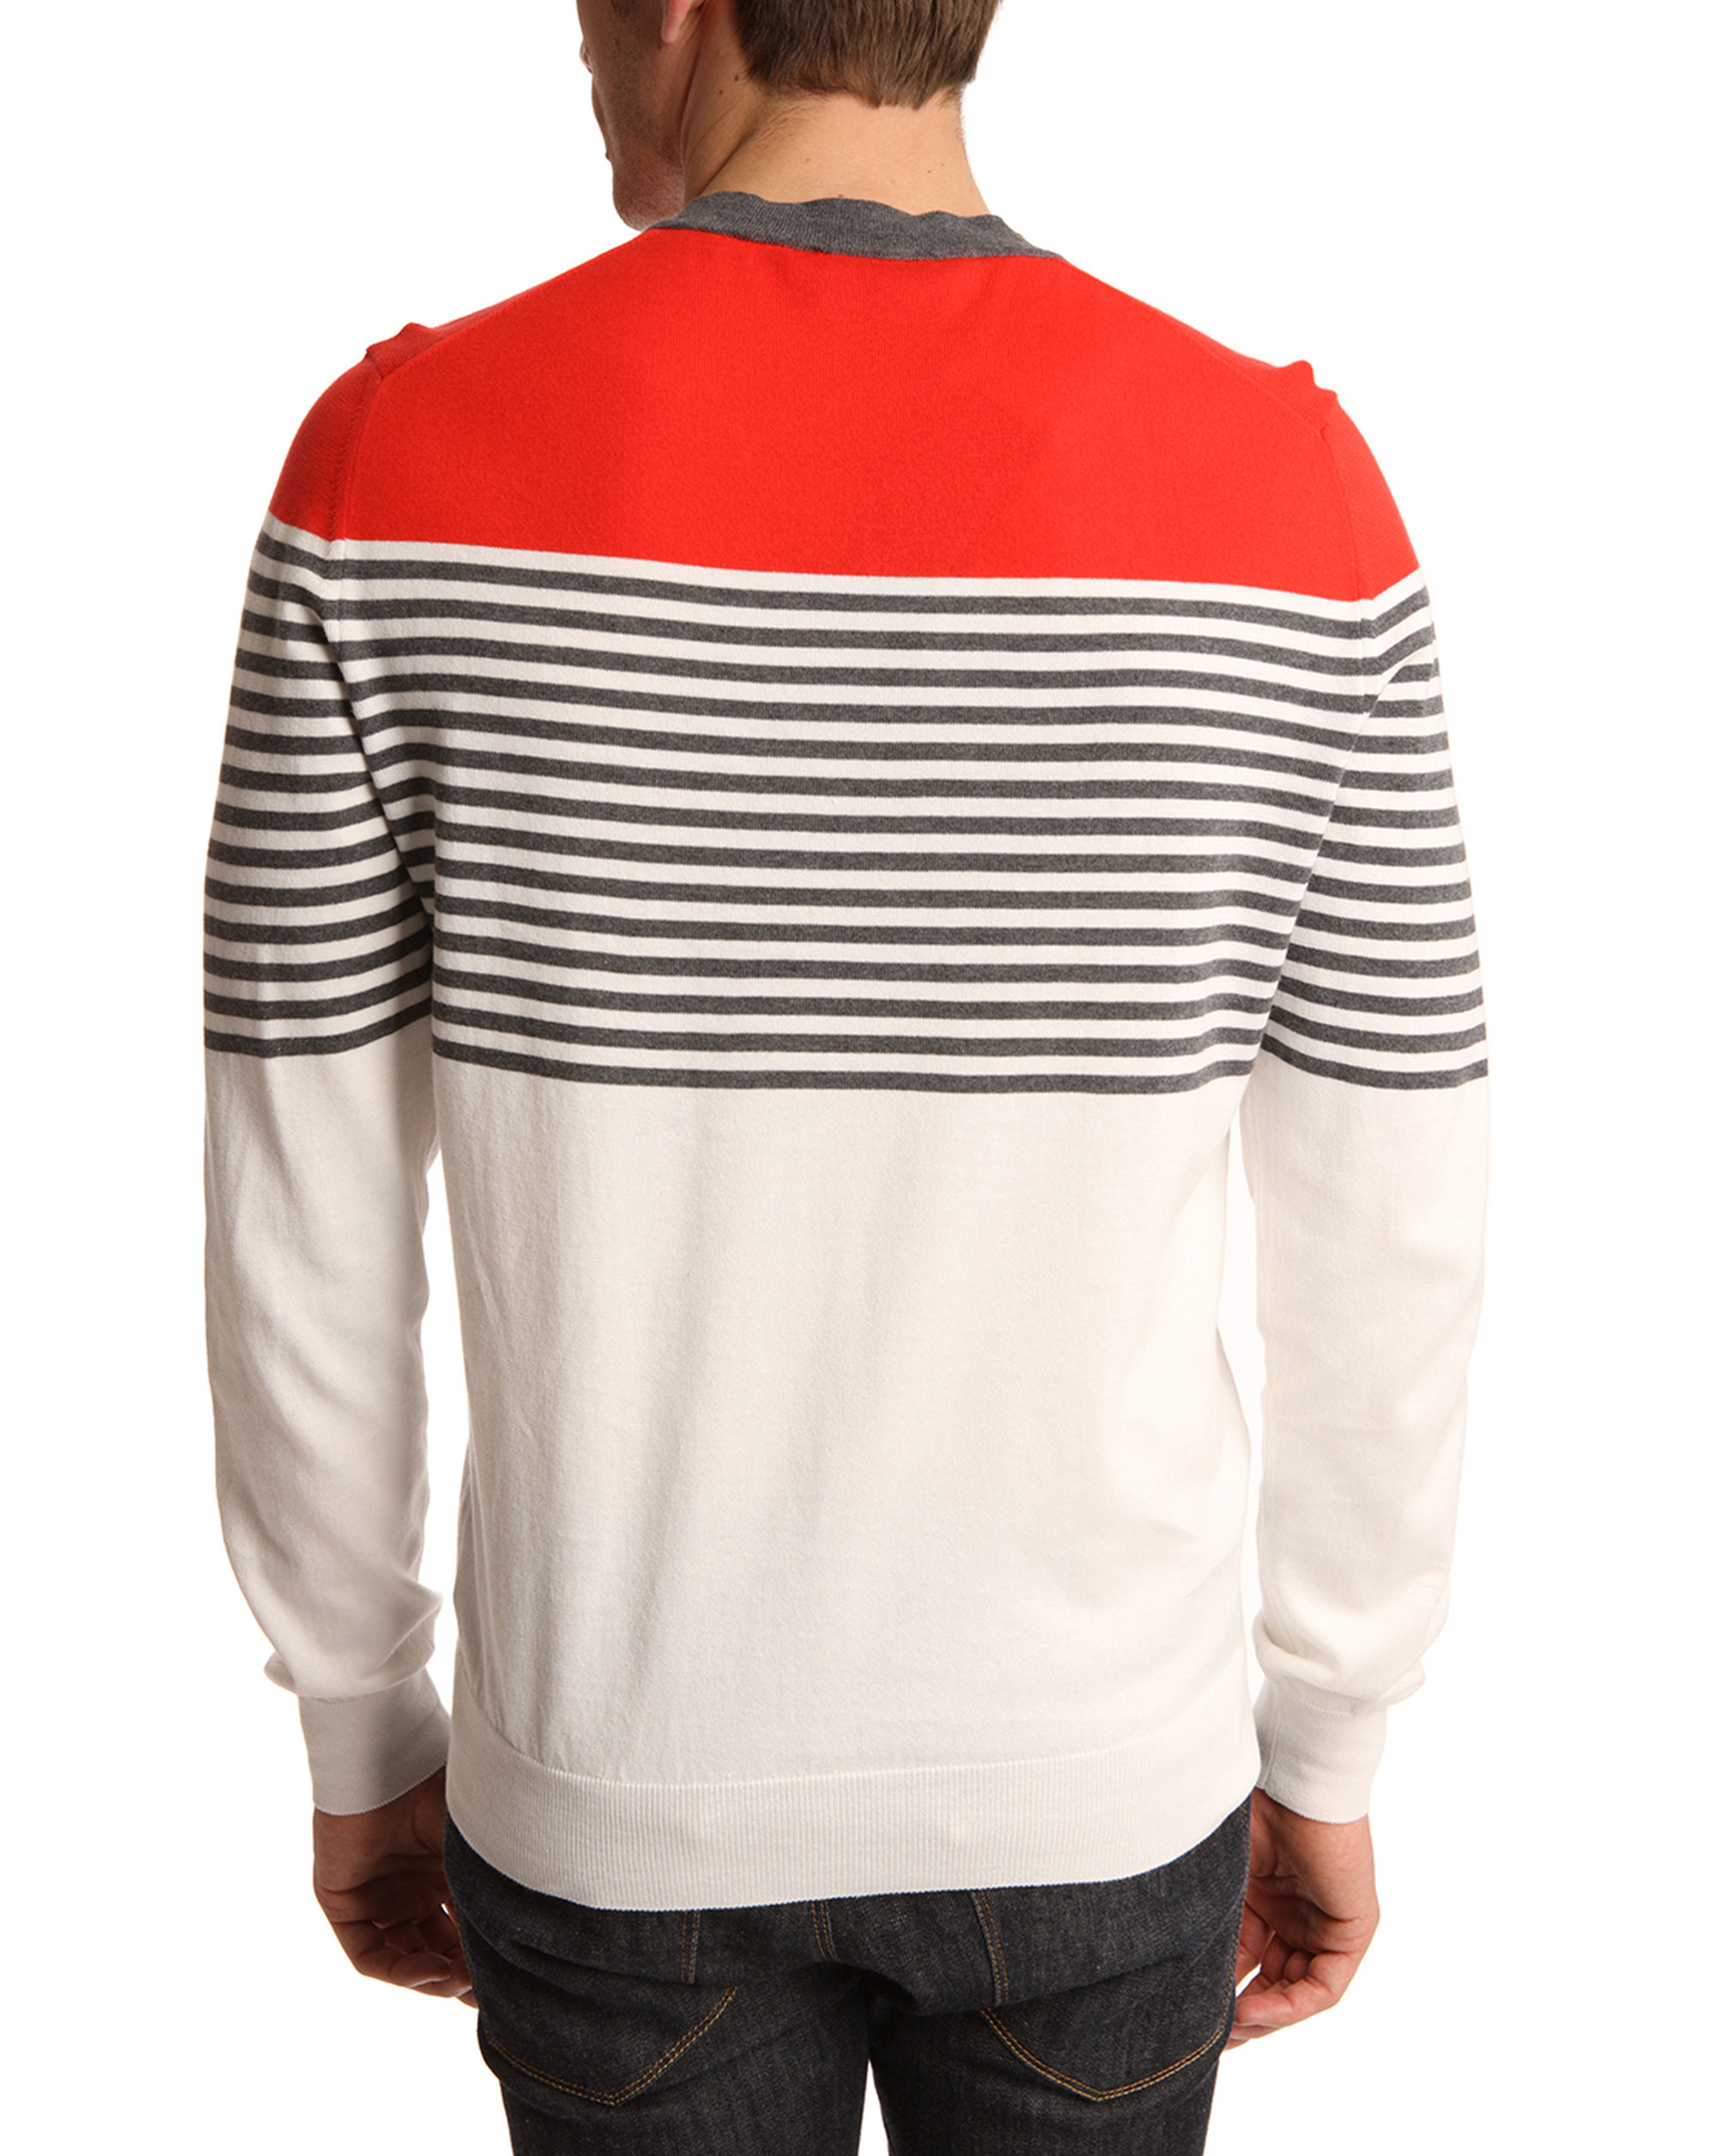 Buy low price, high quality v neck striped red white with worldwide shipping on pxtube.gq